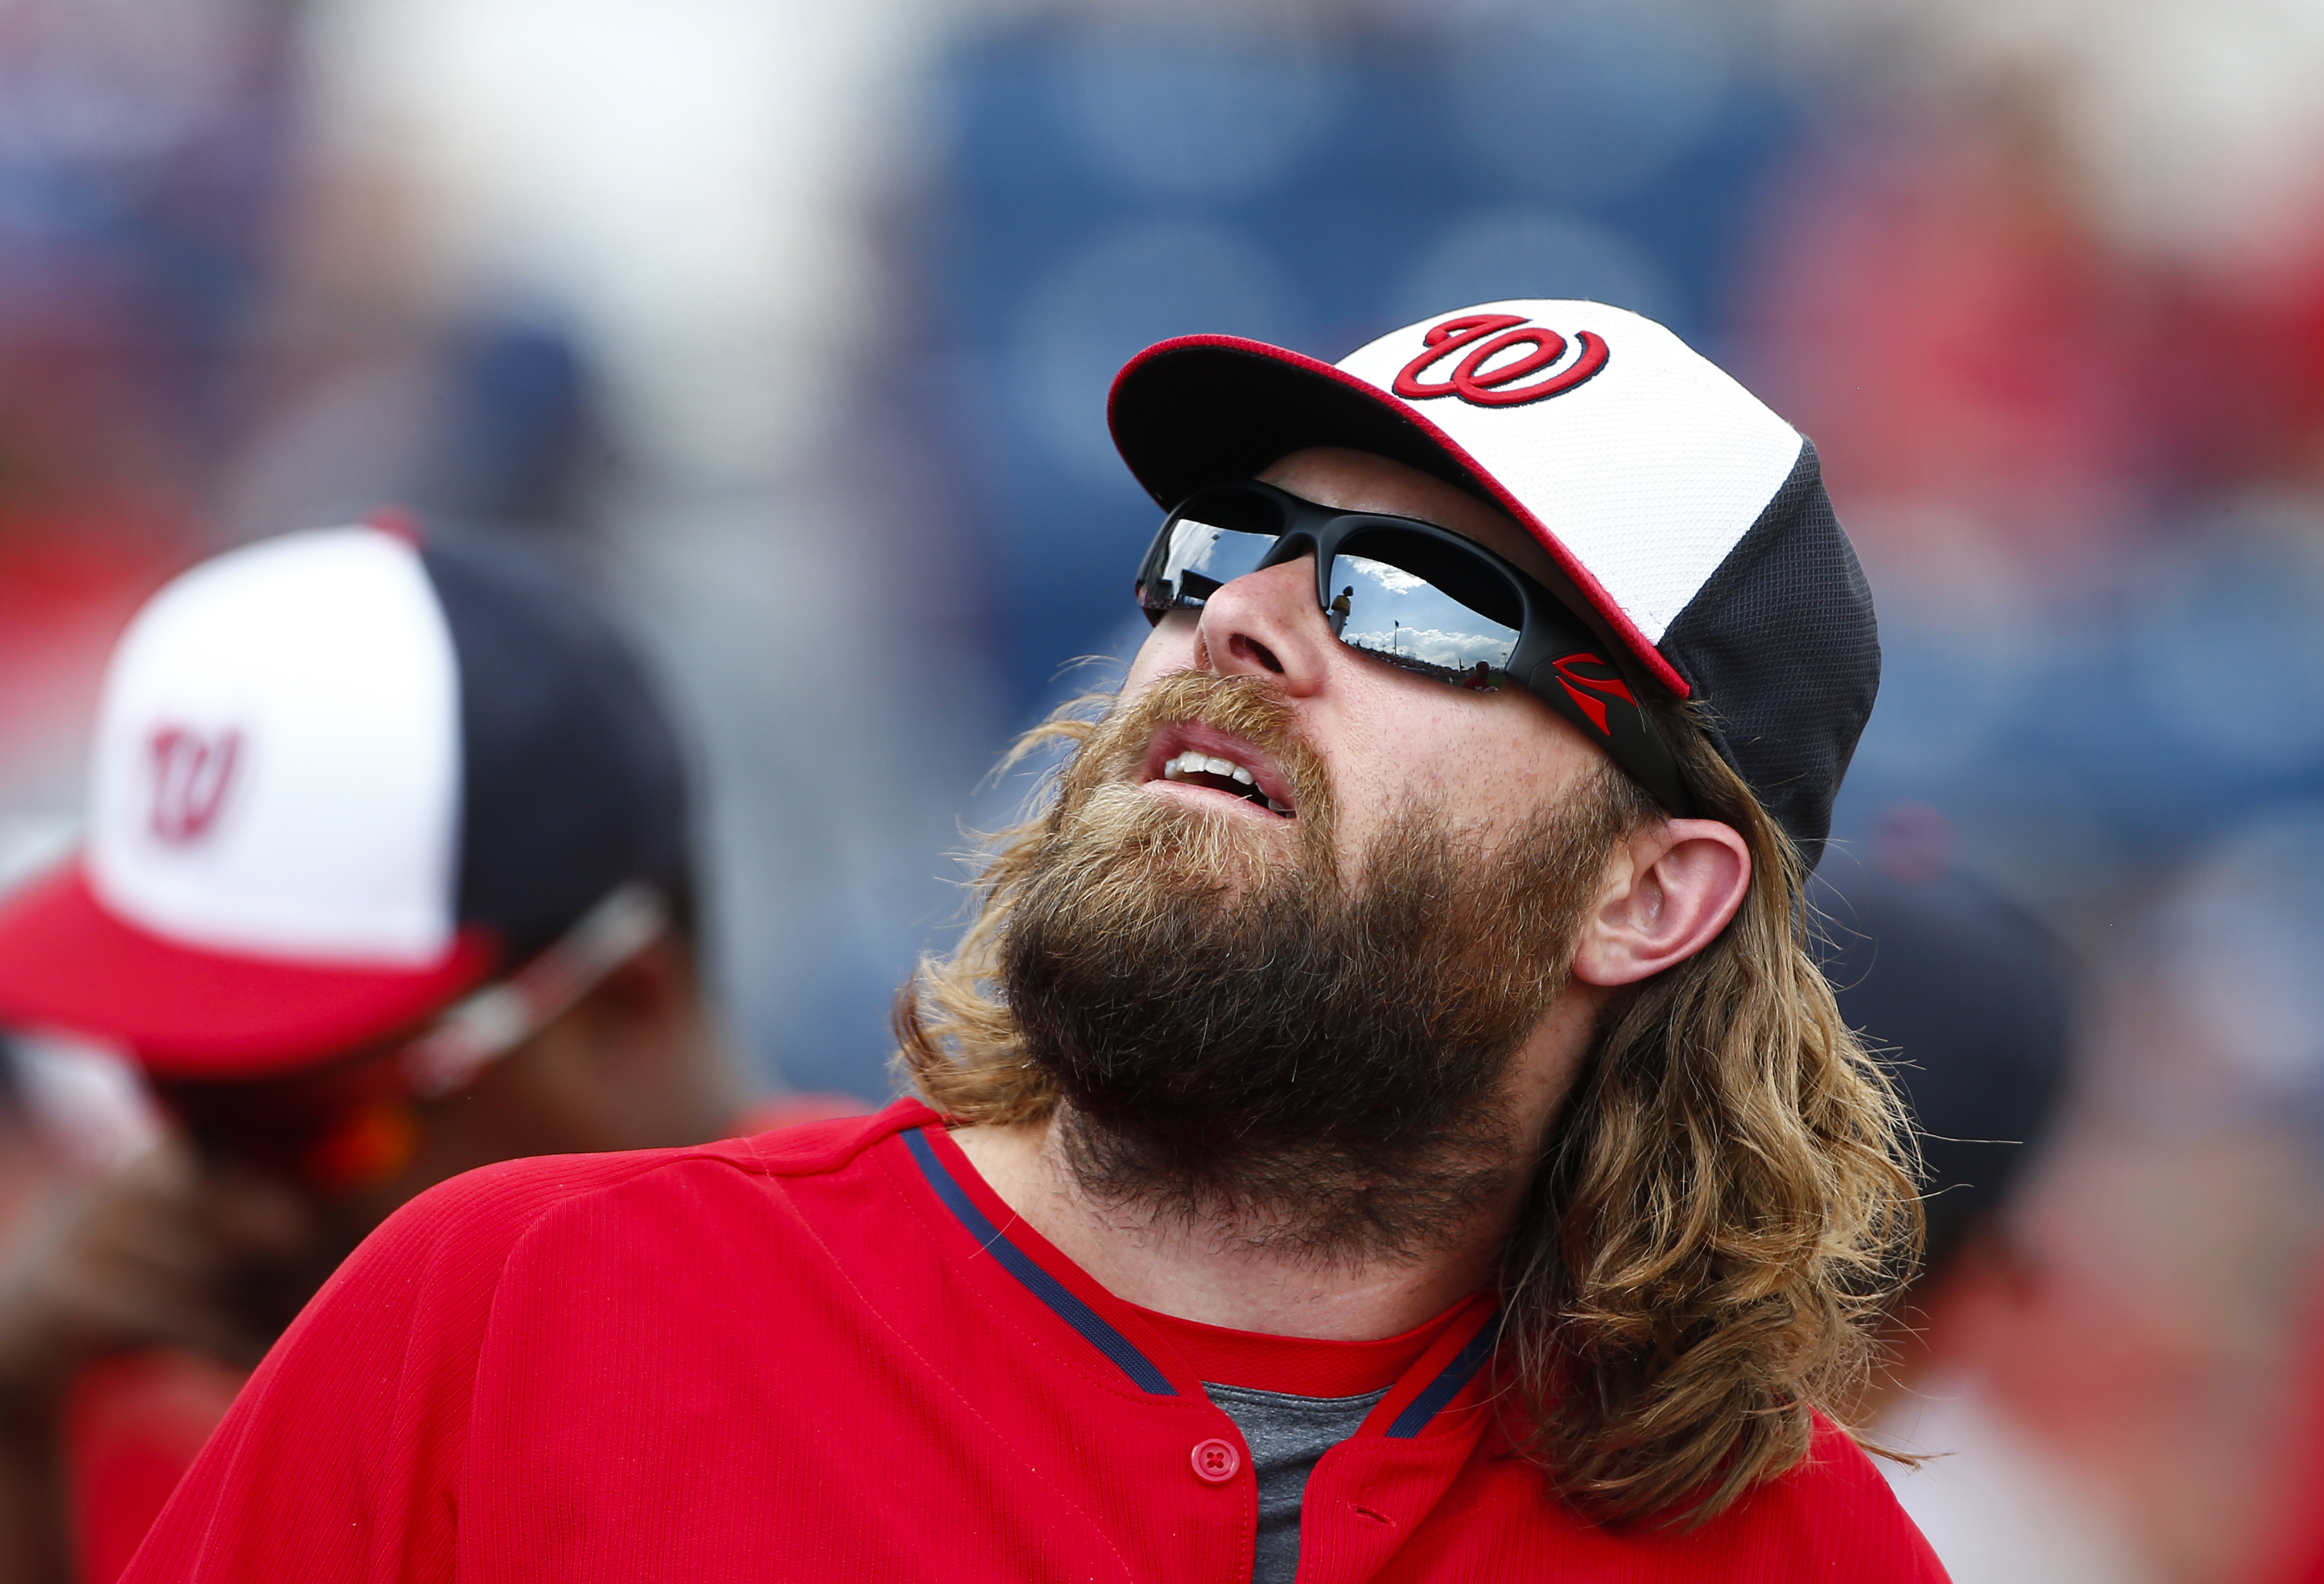 Jayson Werth leaves big tip for Buffalo waitress